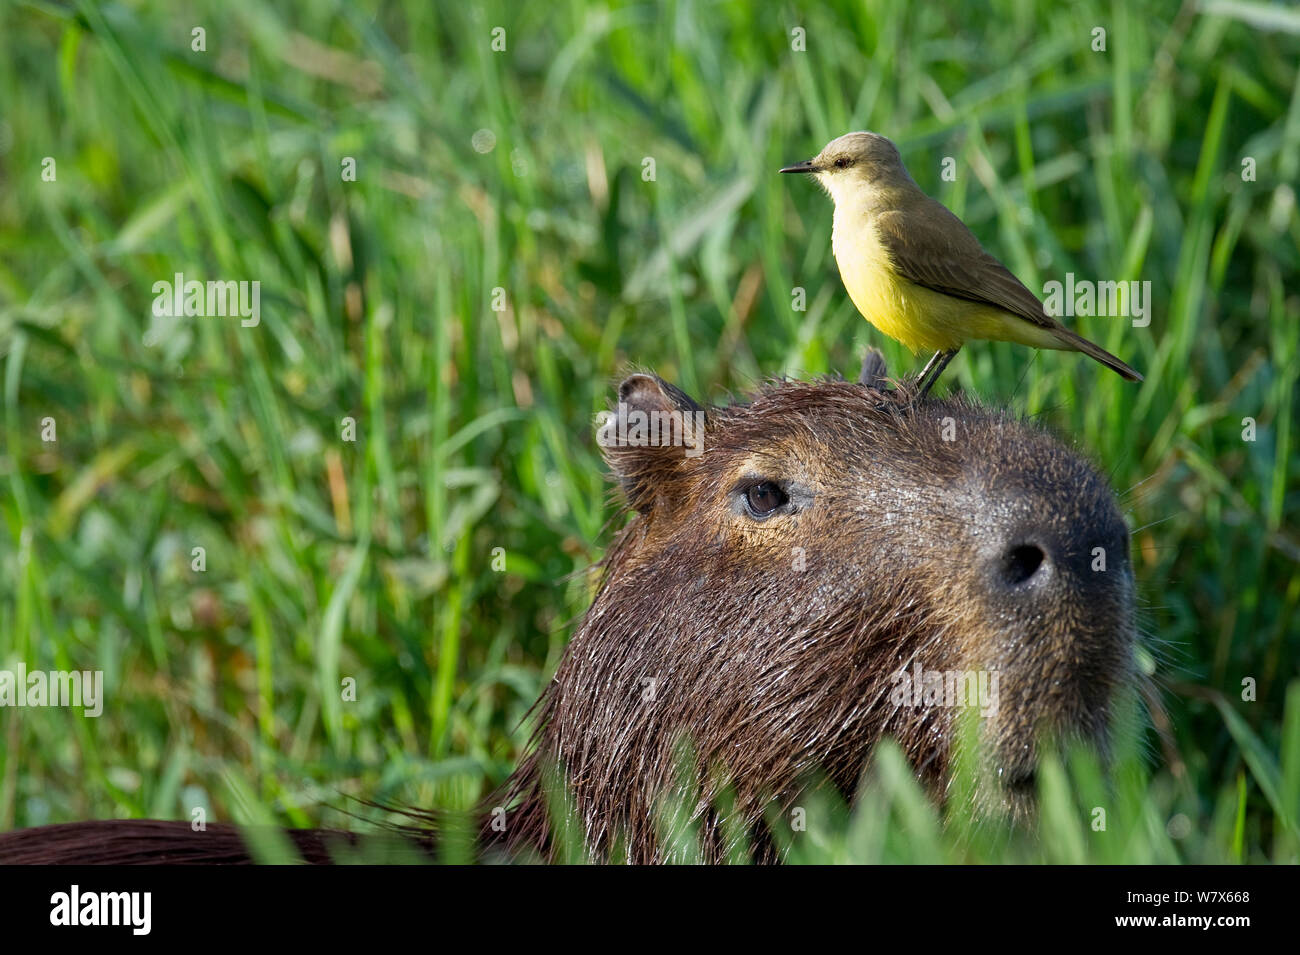 Cattle Tyrant (Machetornis rixosa) perched  Capybara (Hydrochoerus hydrochaeris), Mato Grosso, Pantanal, Brazil.  July. Stock Photo